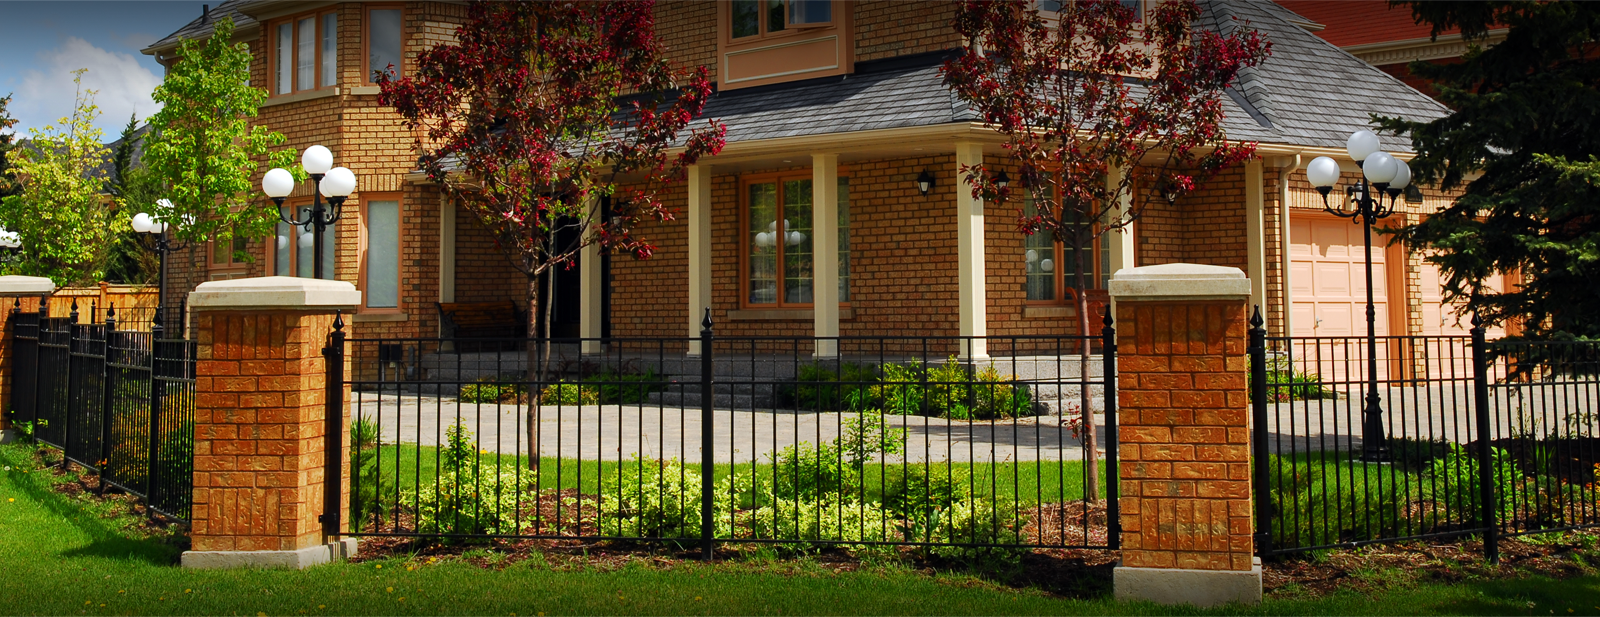 (914) 517-3910 & Globe Fence \u0026 Railings Inc. | The Leading Residential Fencing ...